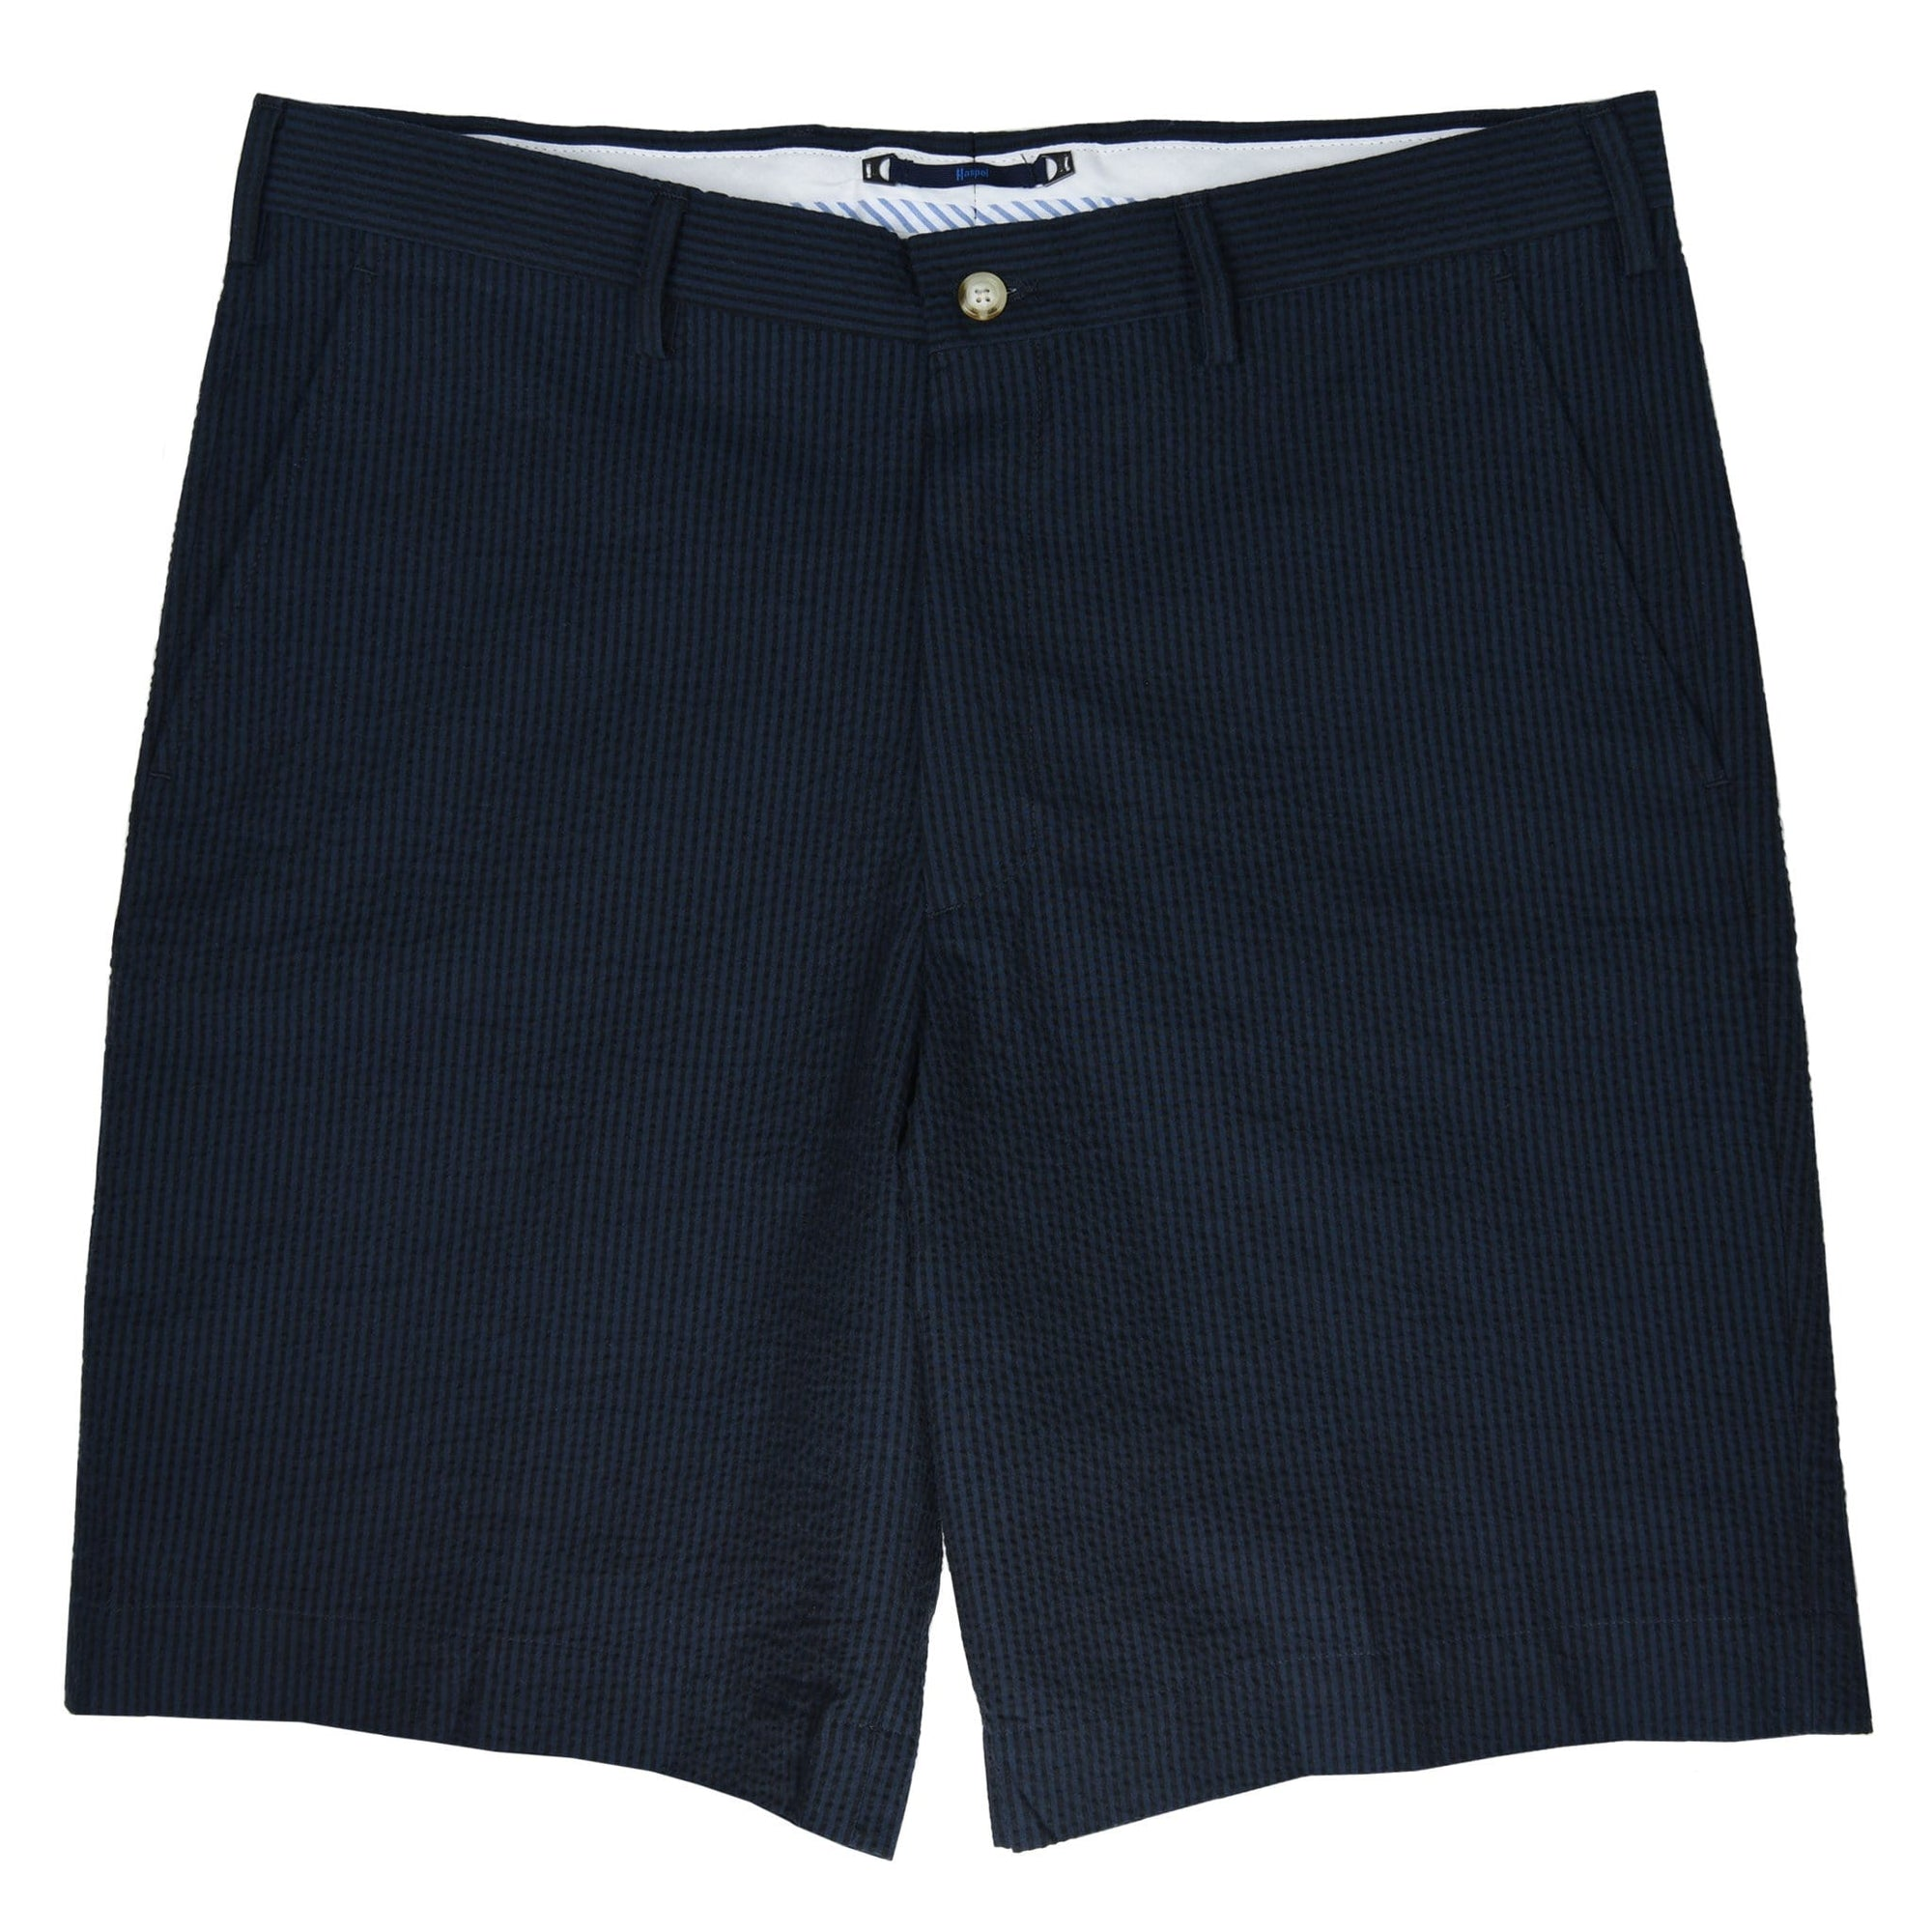 Felicity Navy Black Seersucker Short - Haspel Clothing